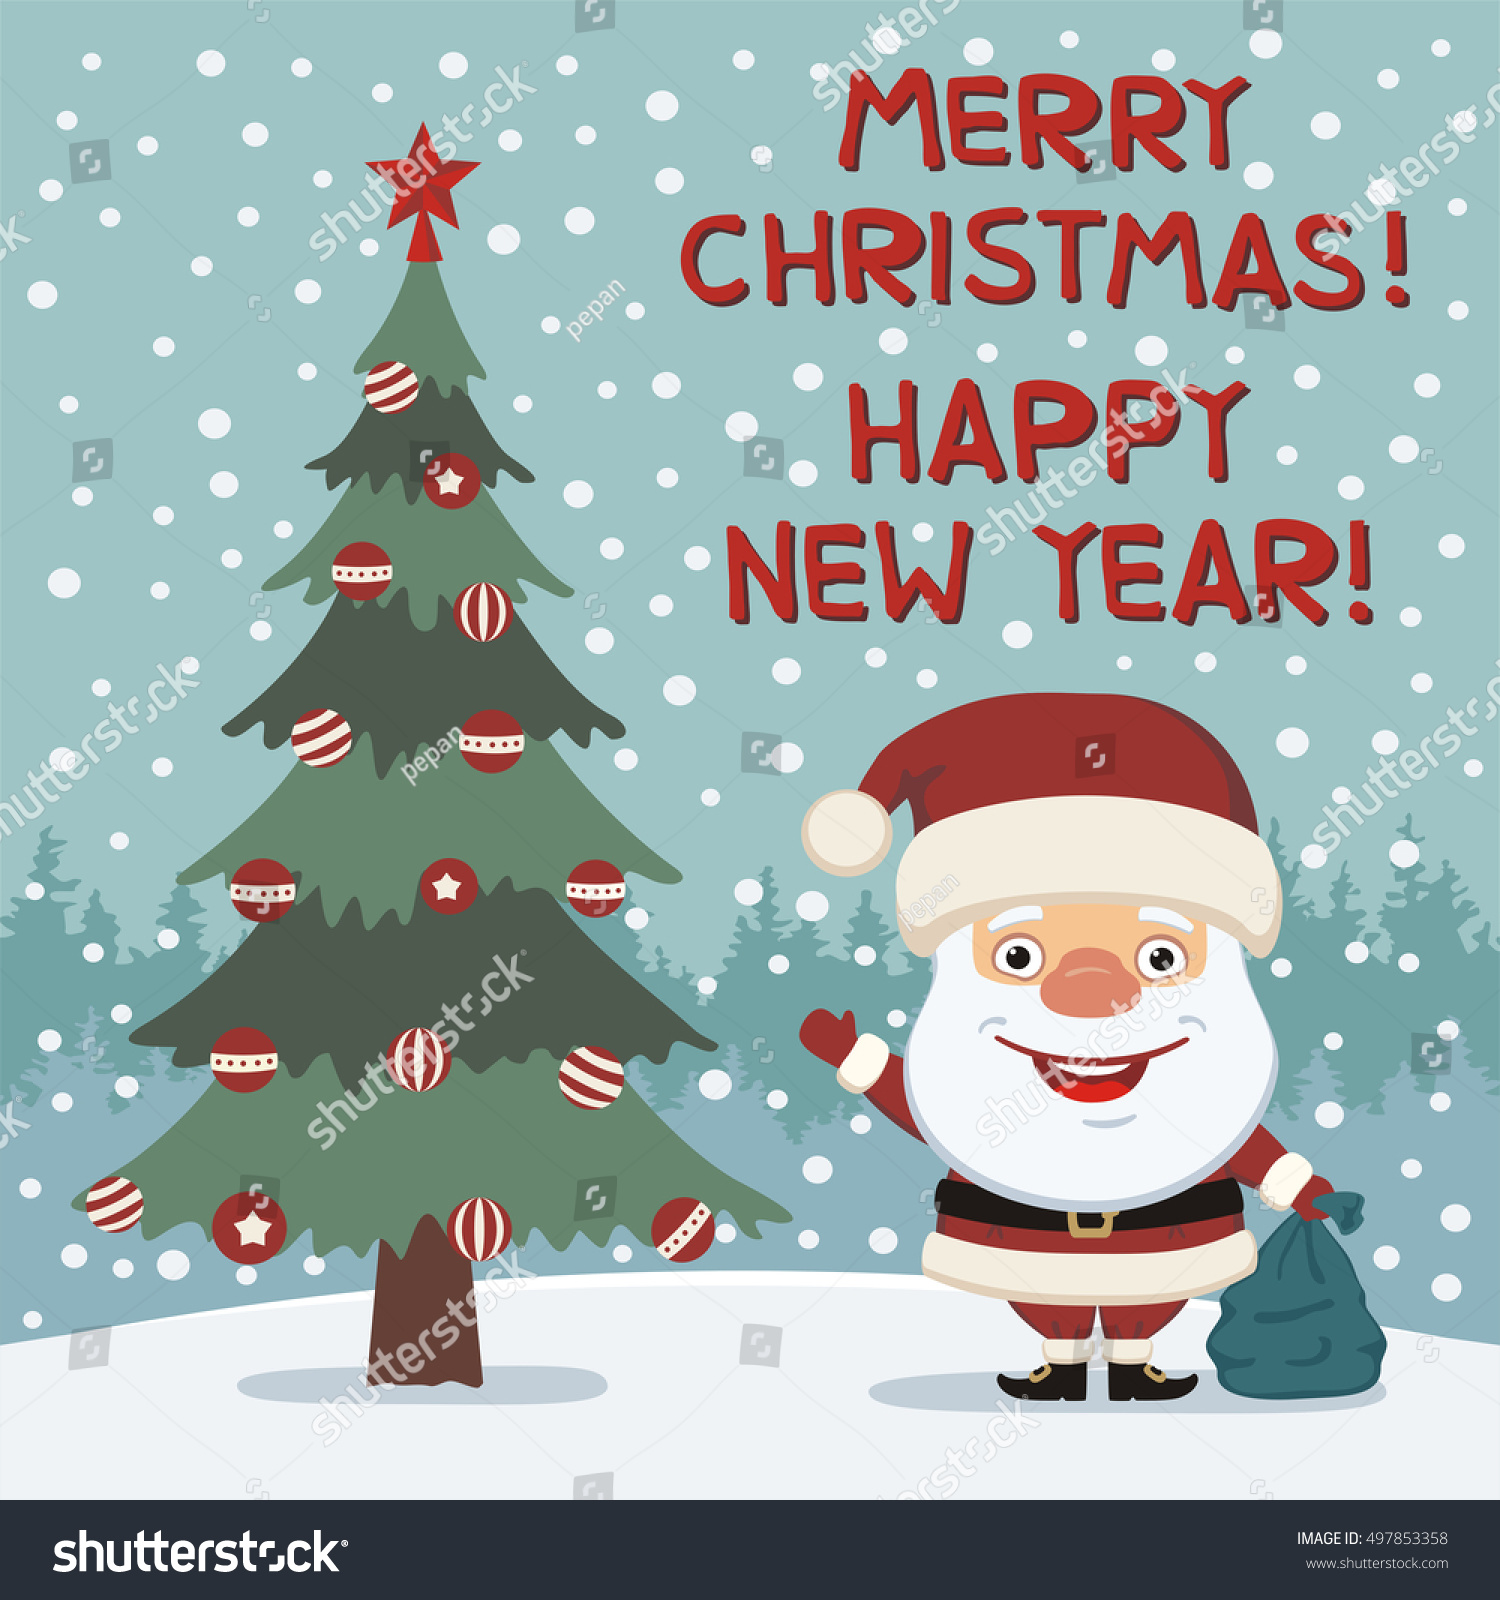 merry christmas and happy new year funny santa claus with gift bag greeting card - Funny Merry Christmas Images